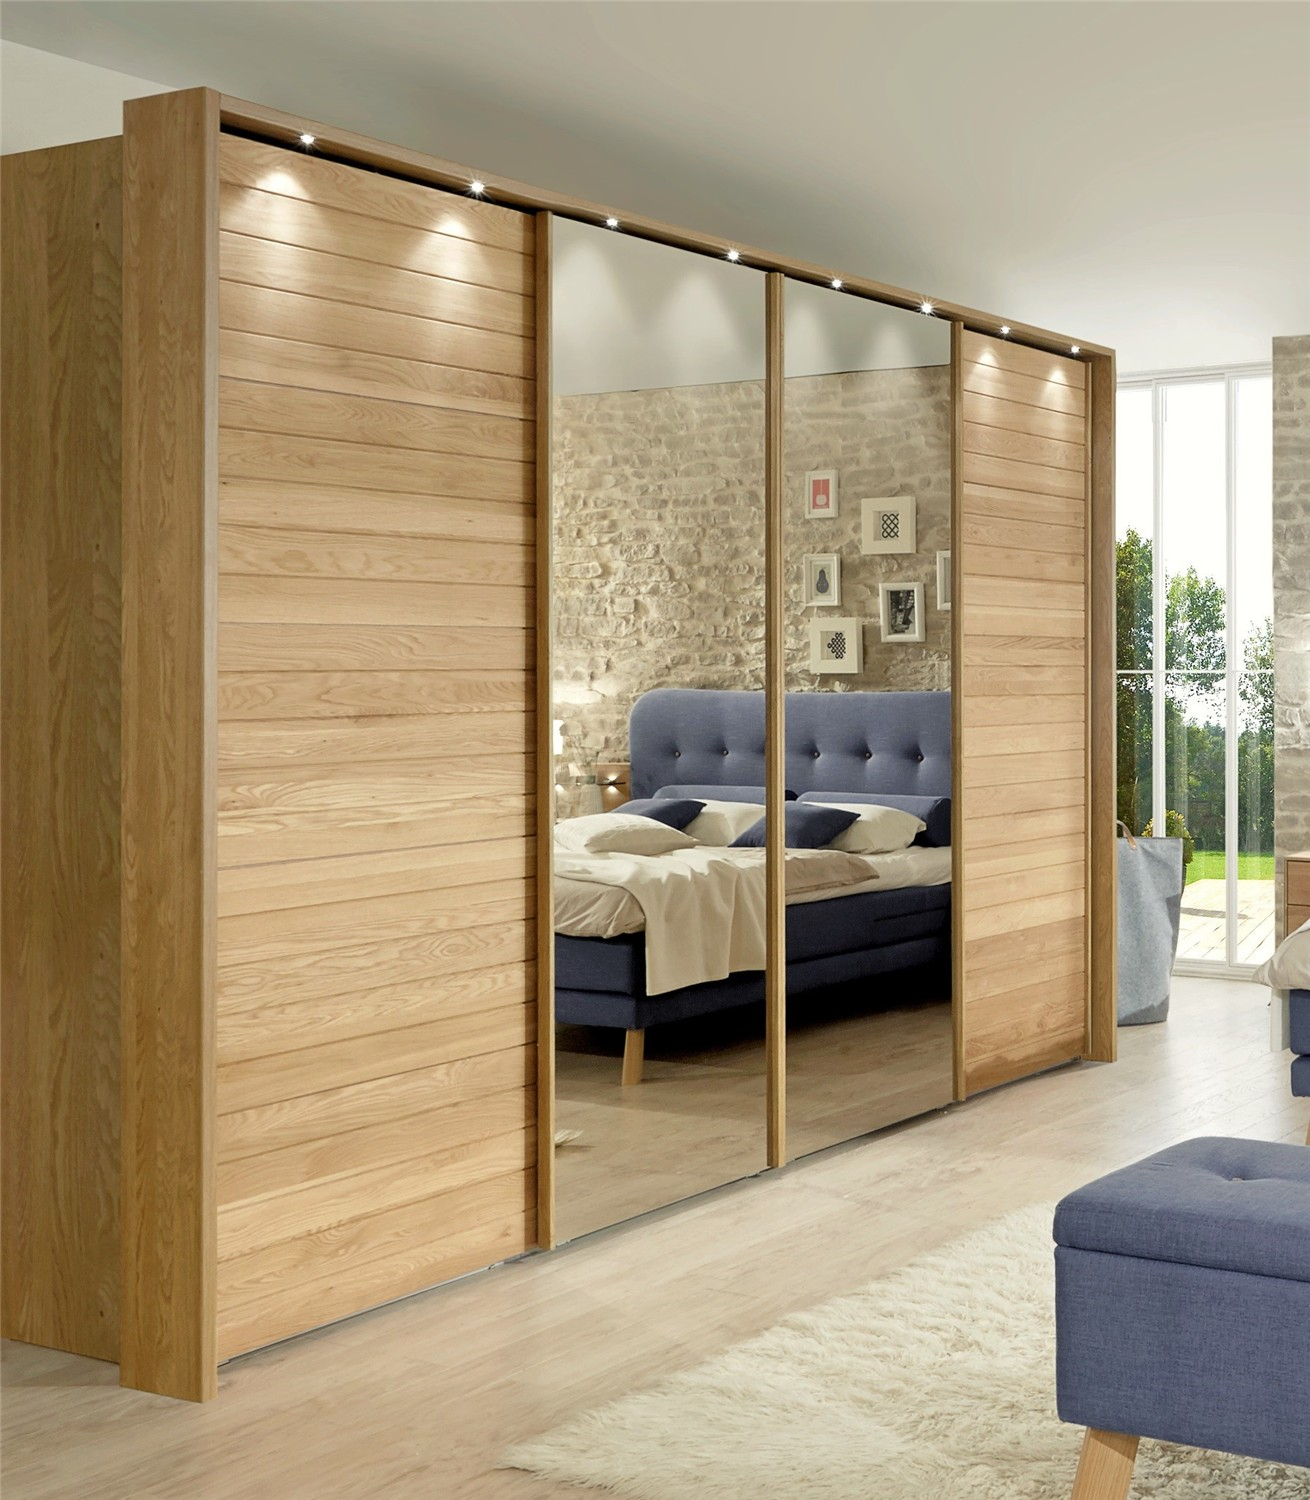 sliding mirror closet doors for bedrooms ideas of solid wood wardrobe by team 7 valore sliding RLJWZNA